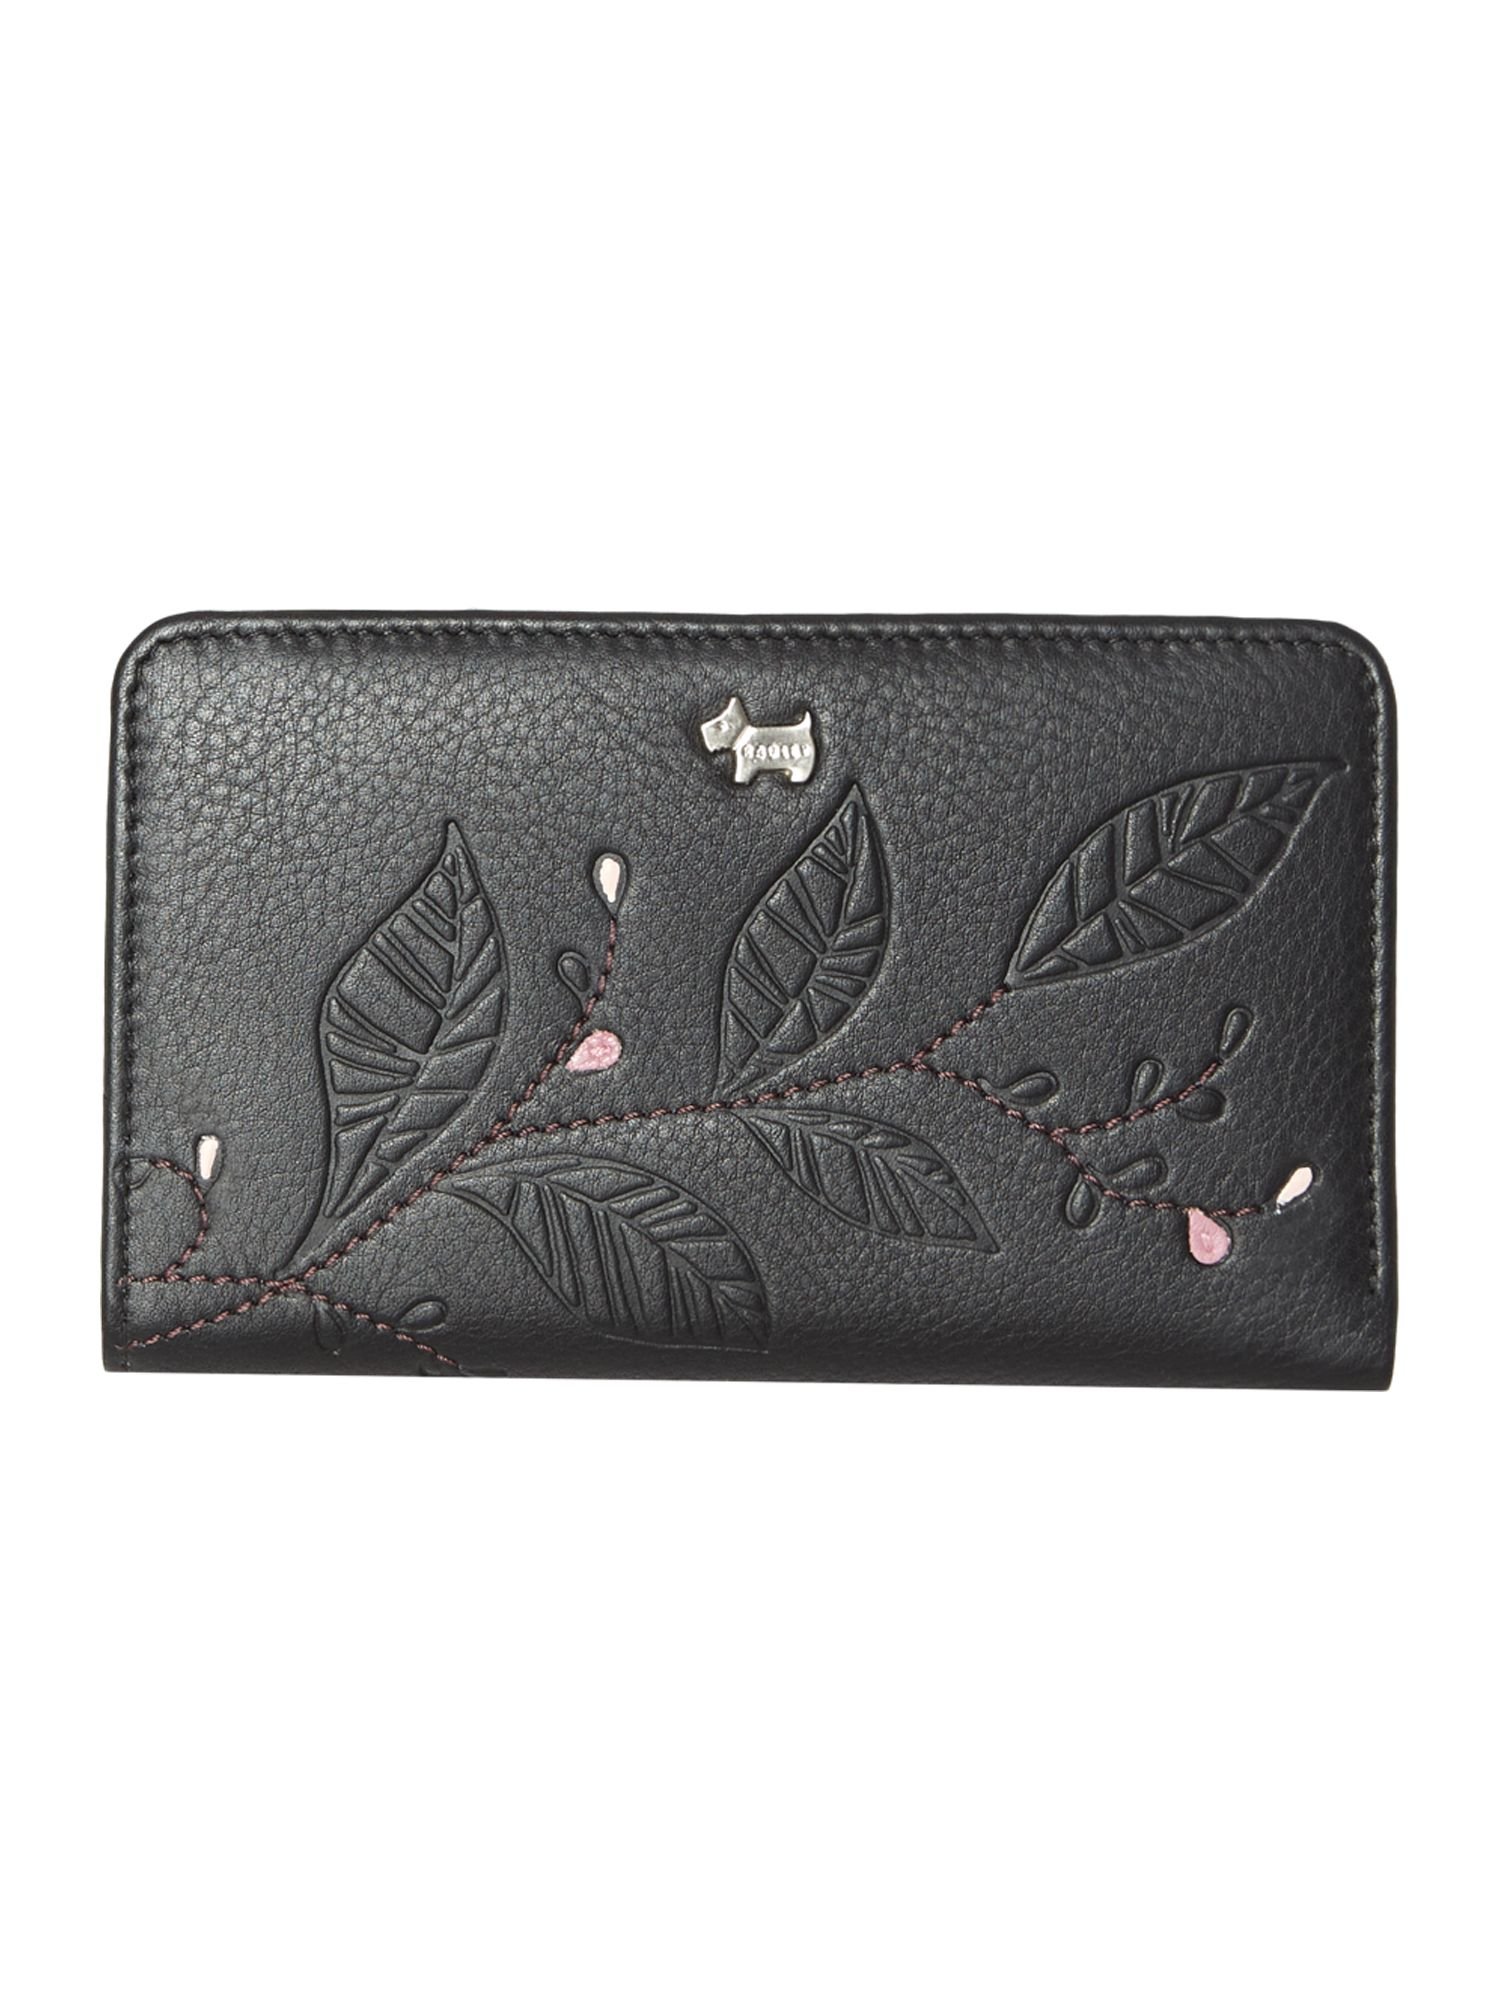 Laurel leaf black medium zip around purse